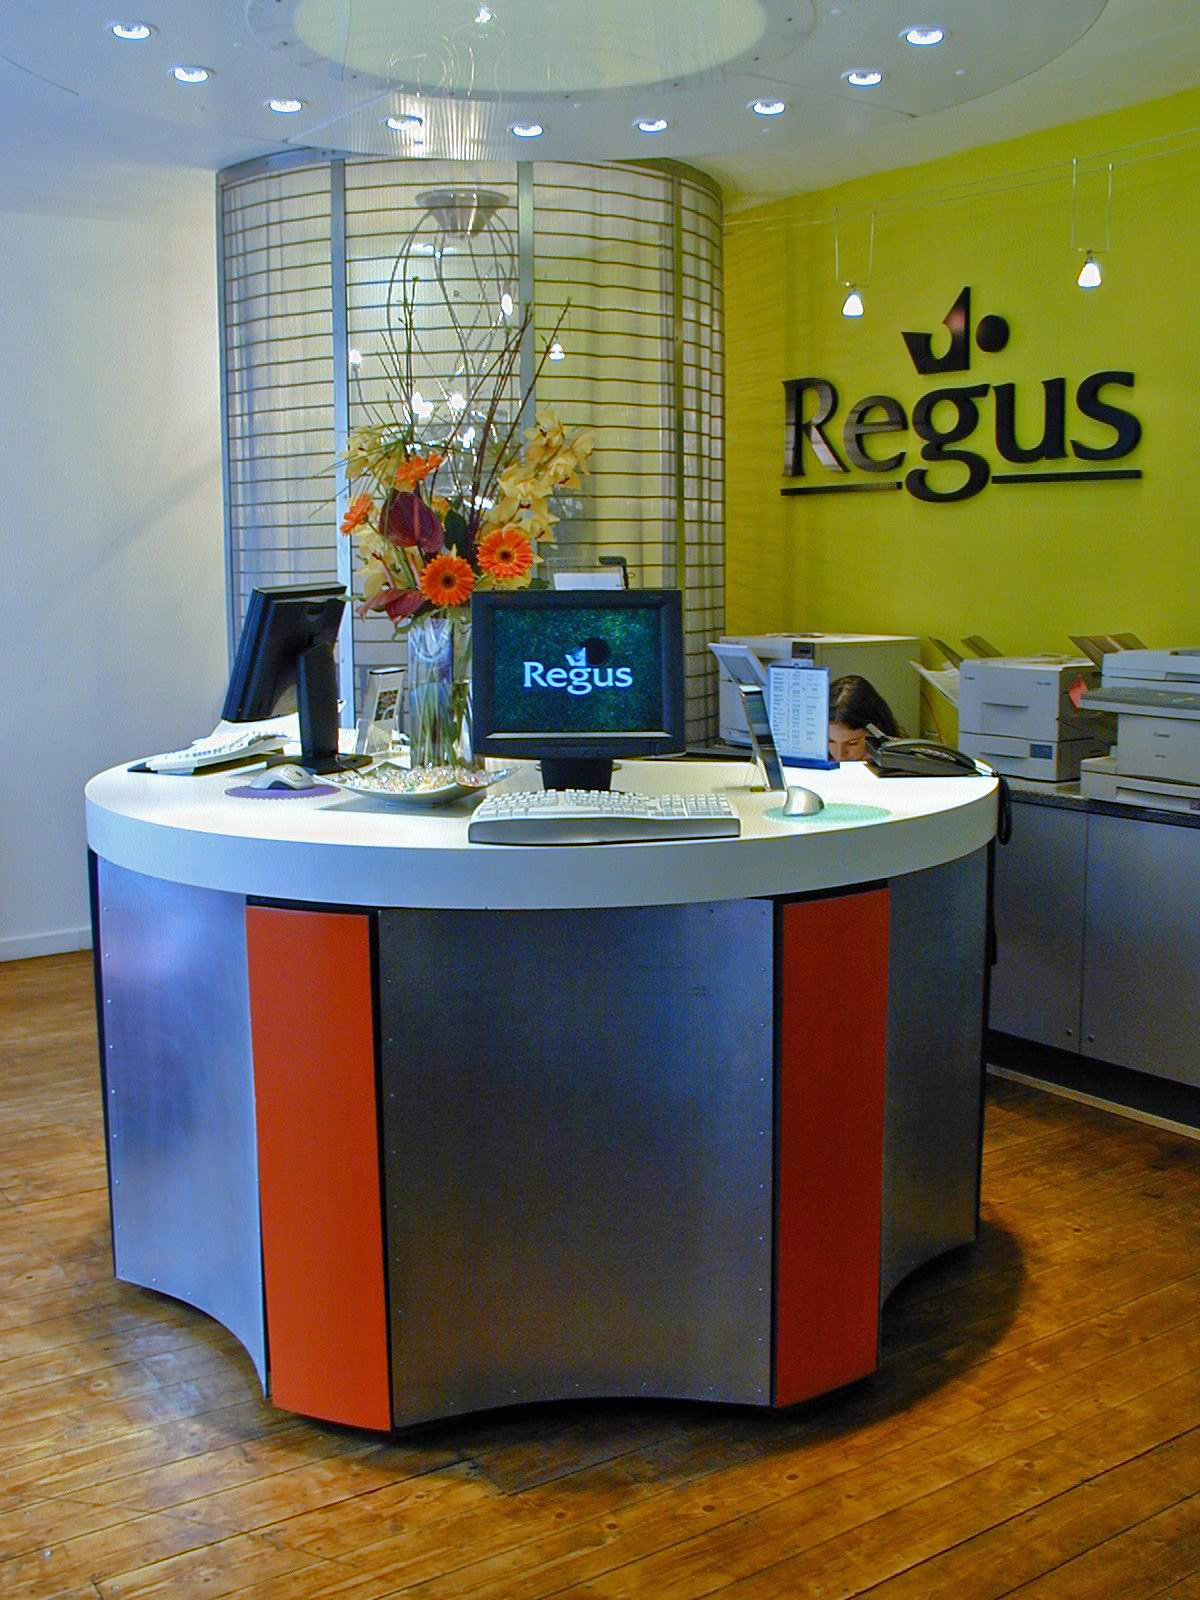 reference point for Regus_edit